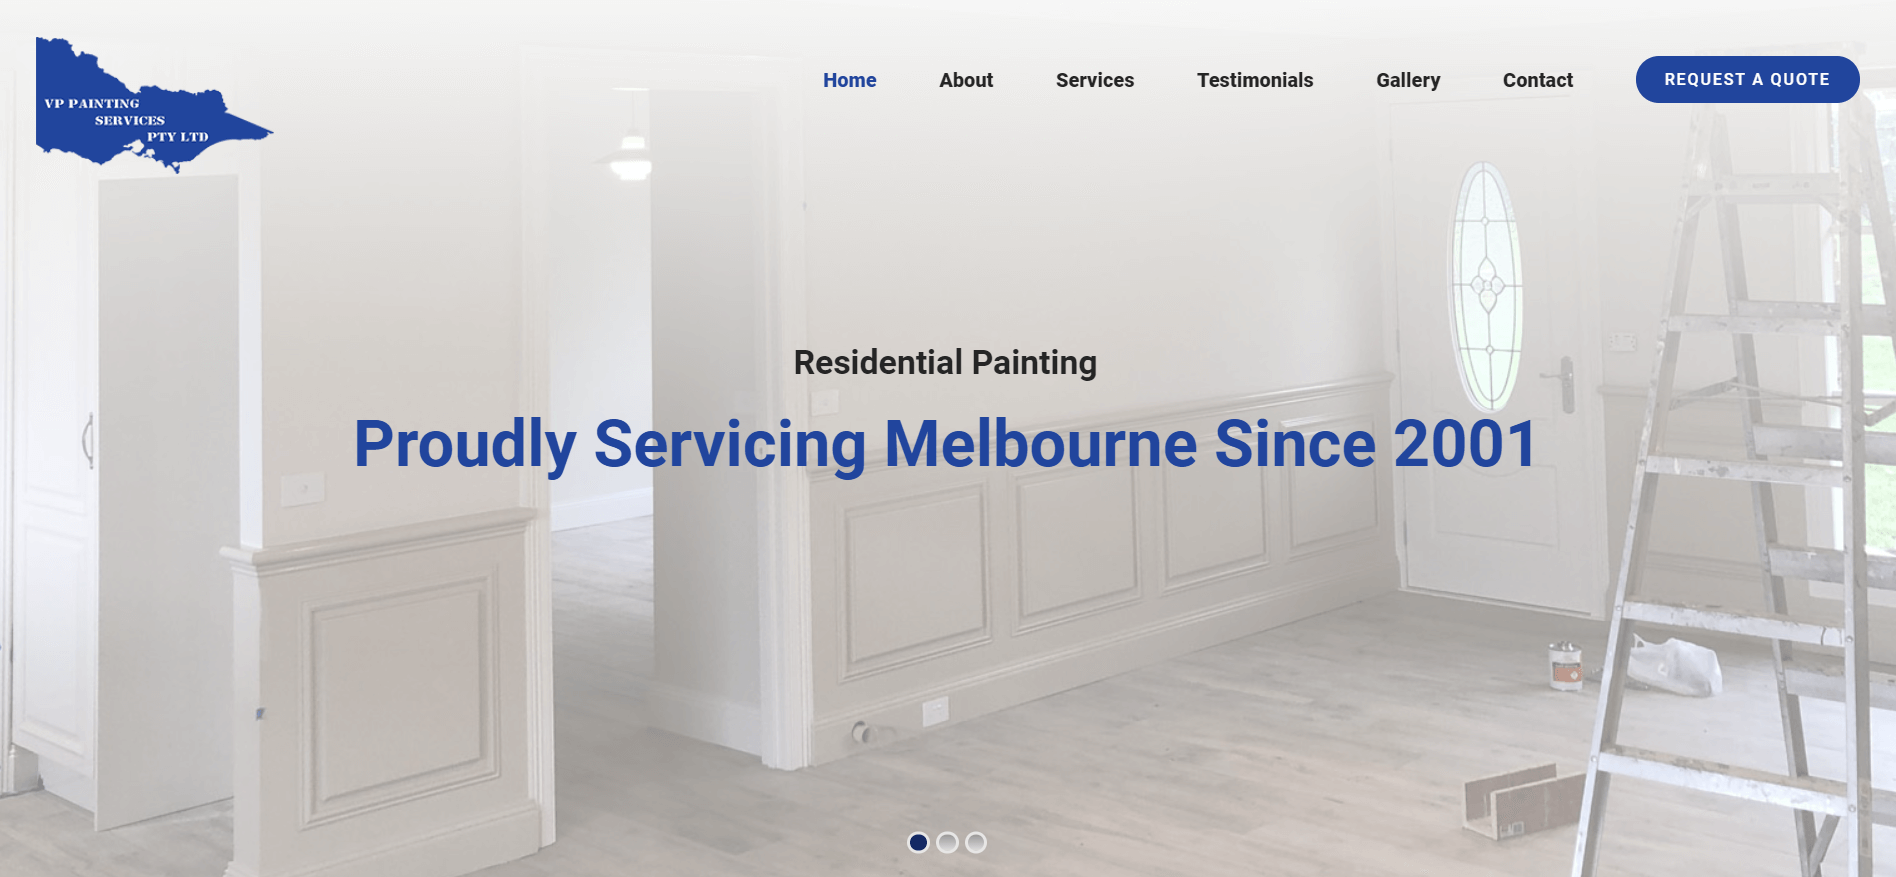 vp painting services